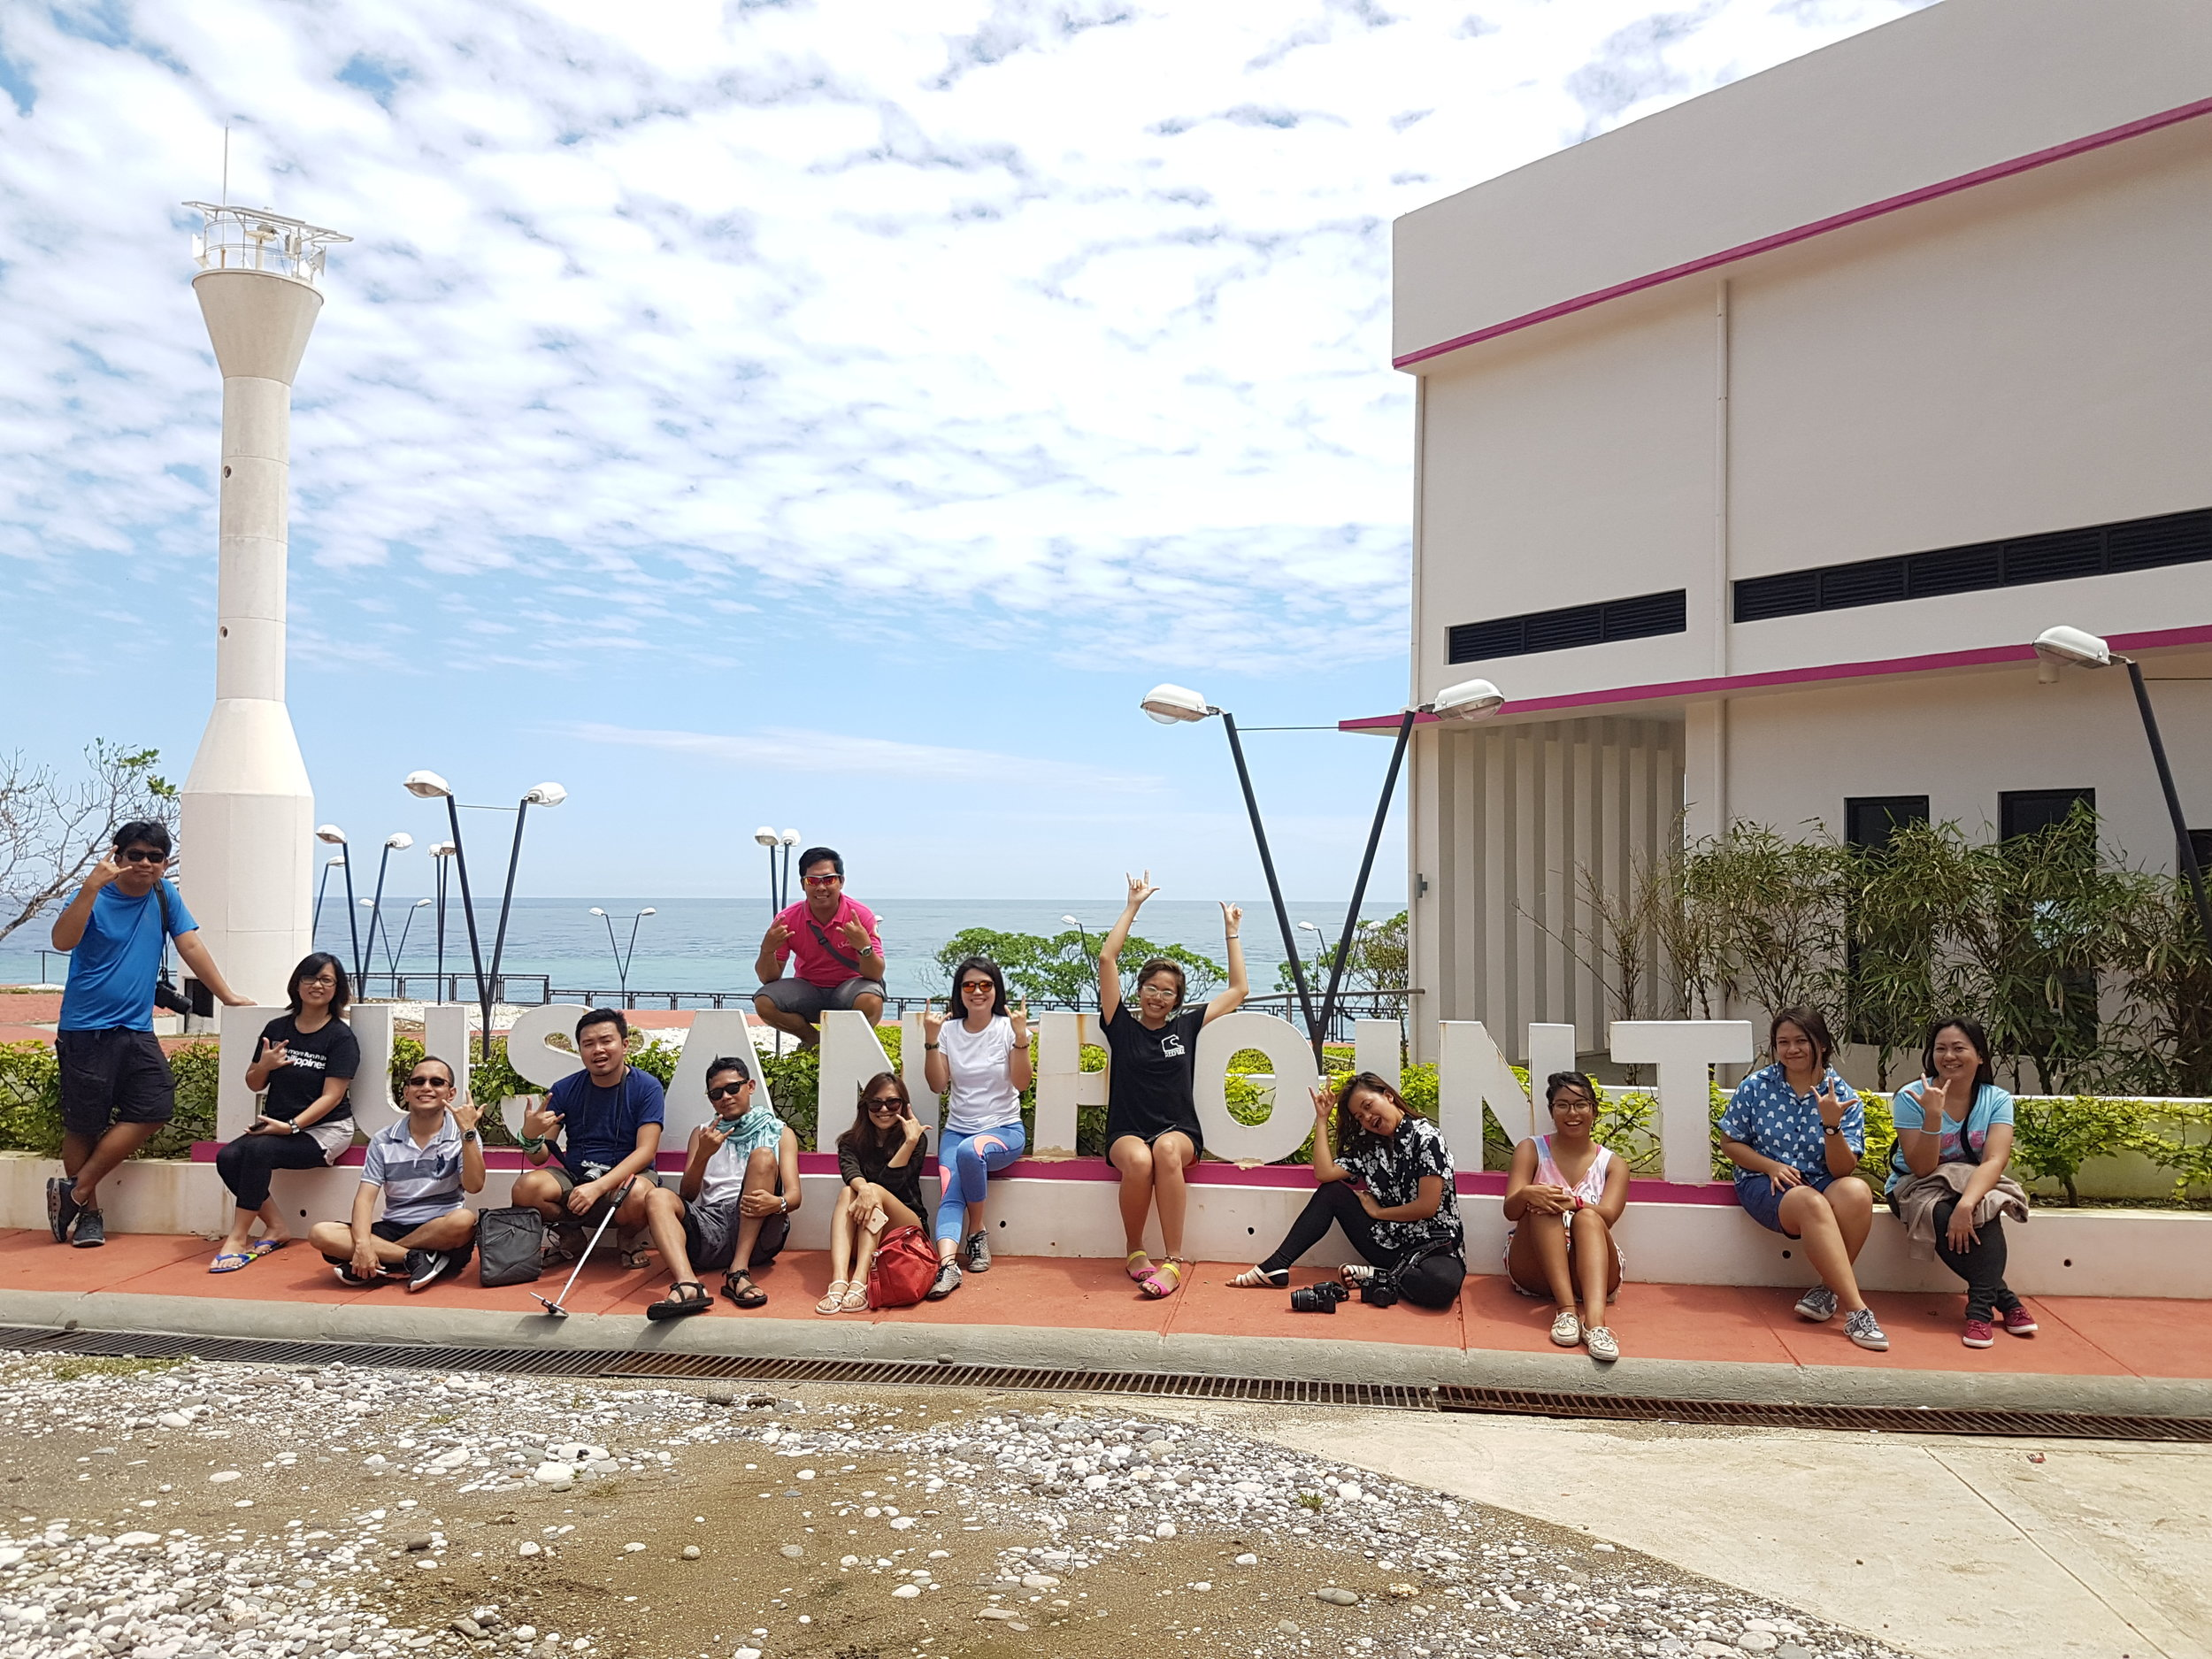 The VDFS team and media at the entrance of Pusan Point.